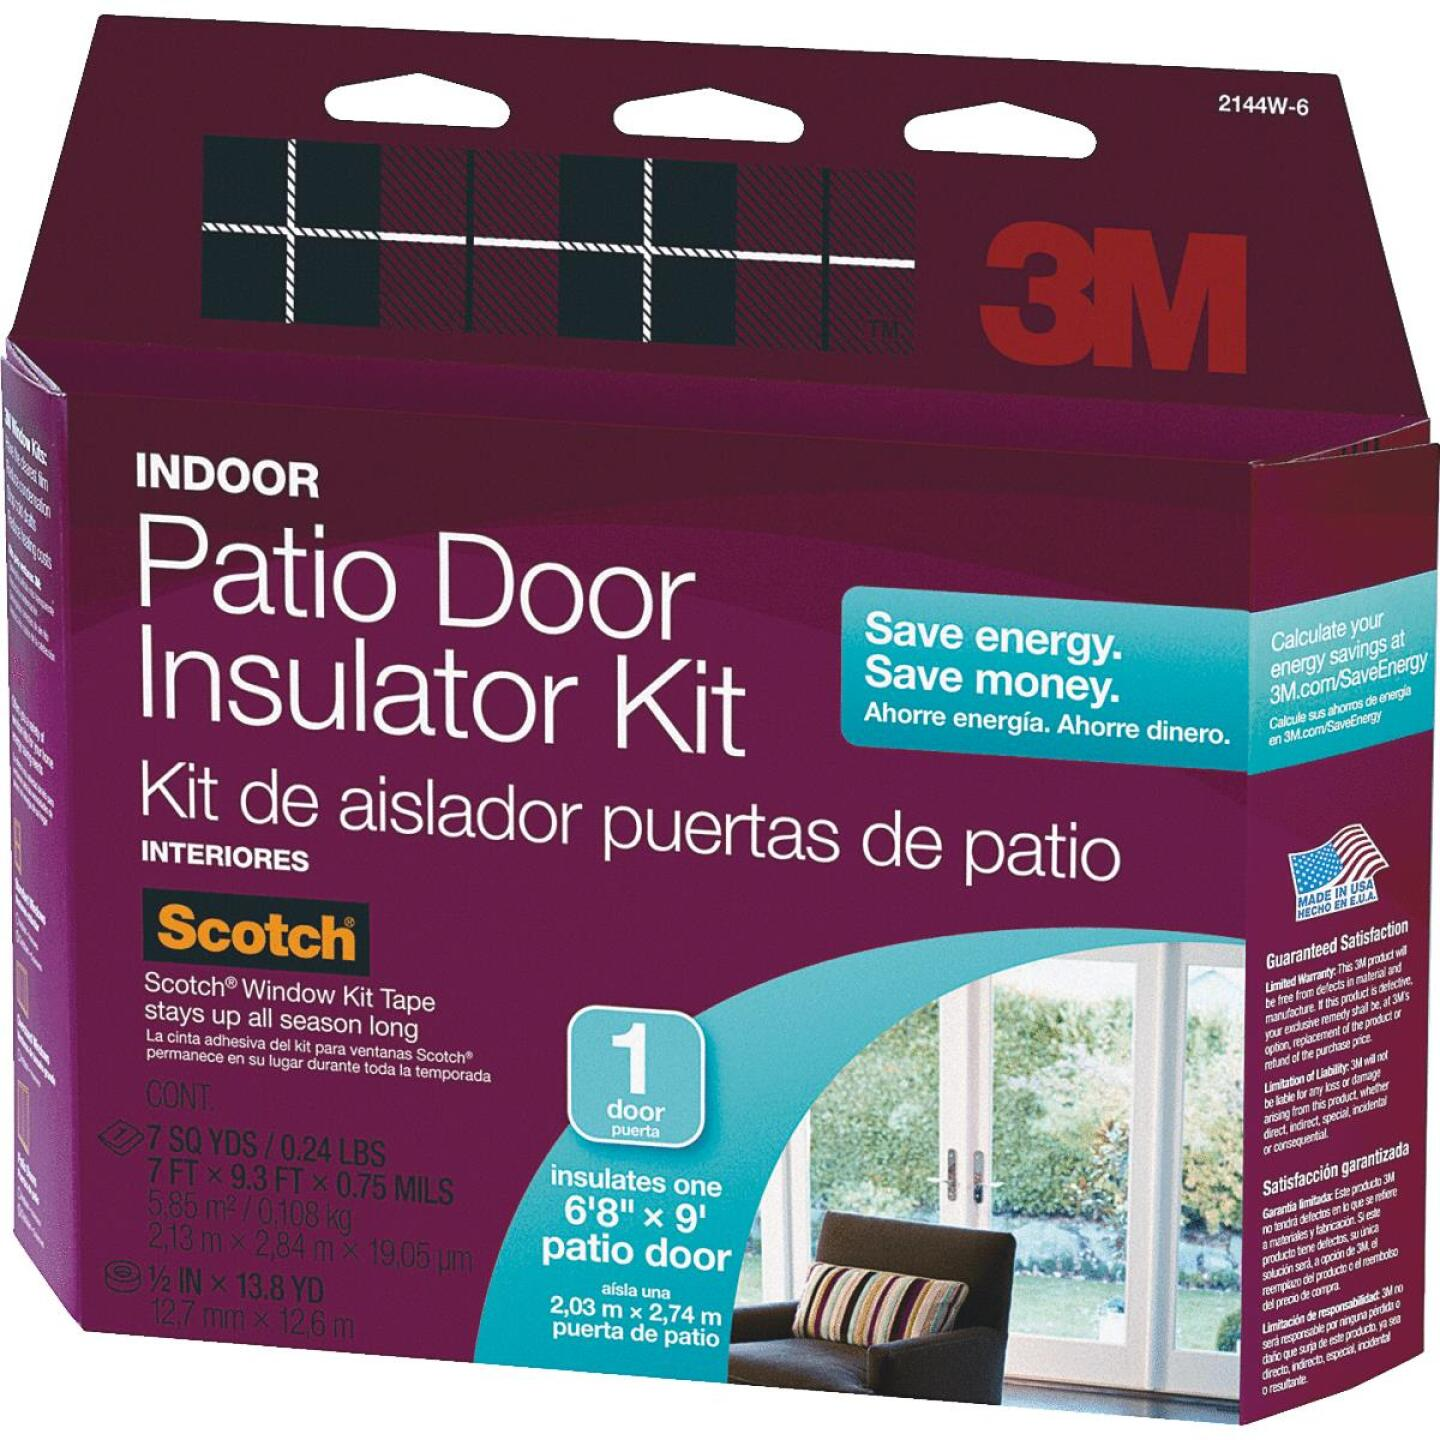 3M Indoor 84 In. x 112 In. Patio Door Insulation Kit Image 1